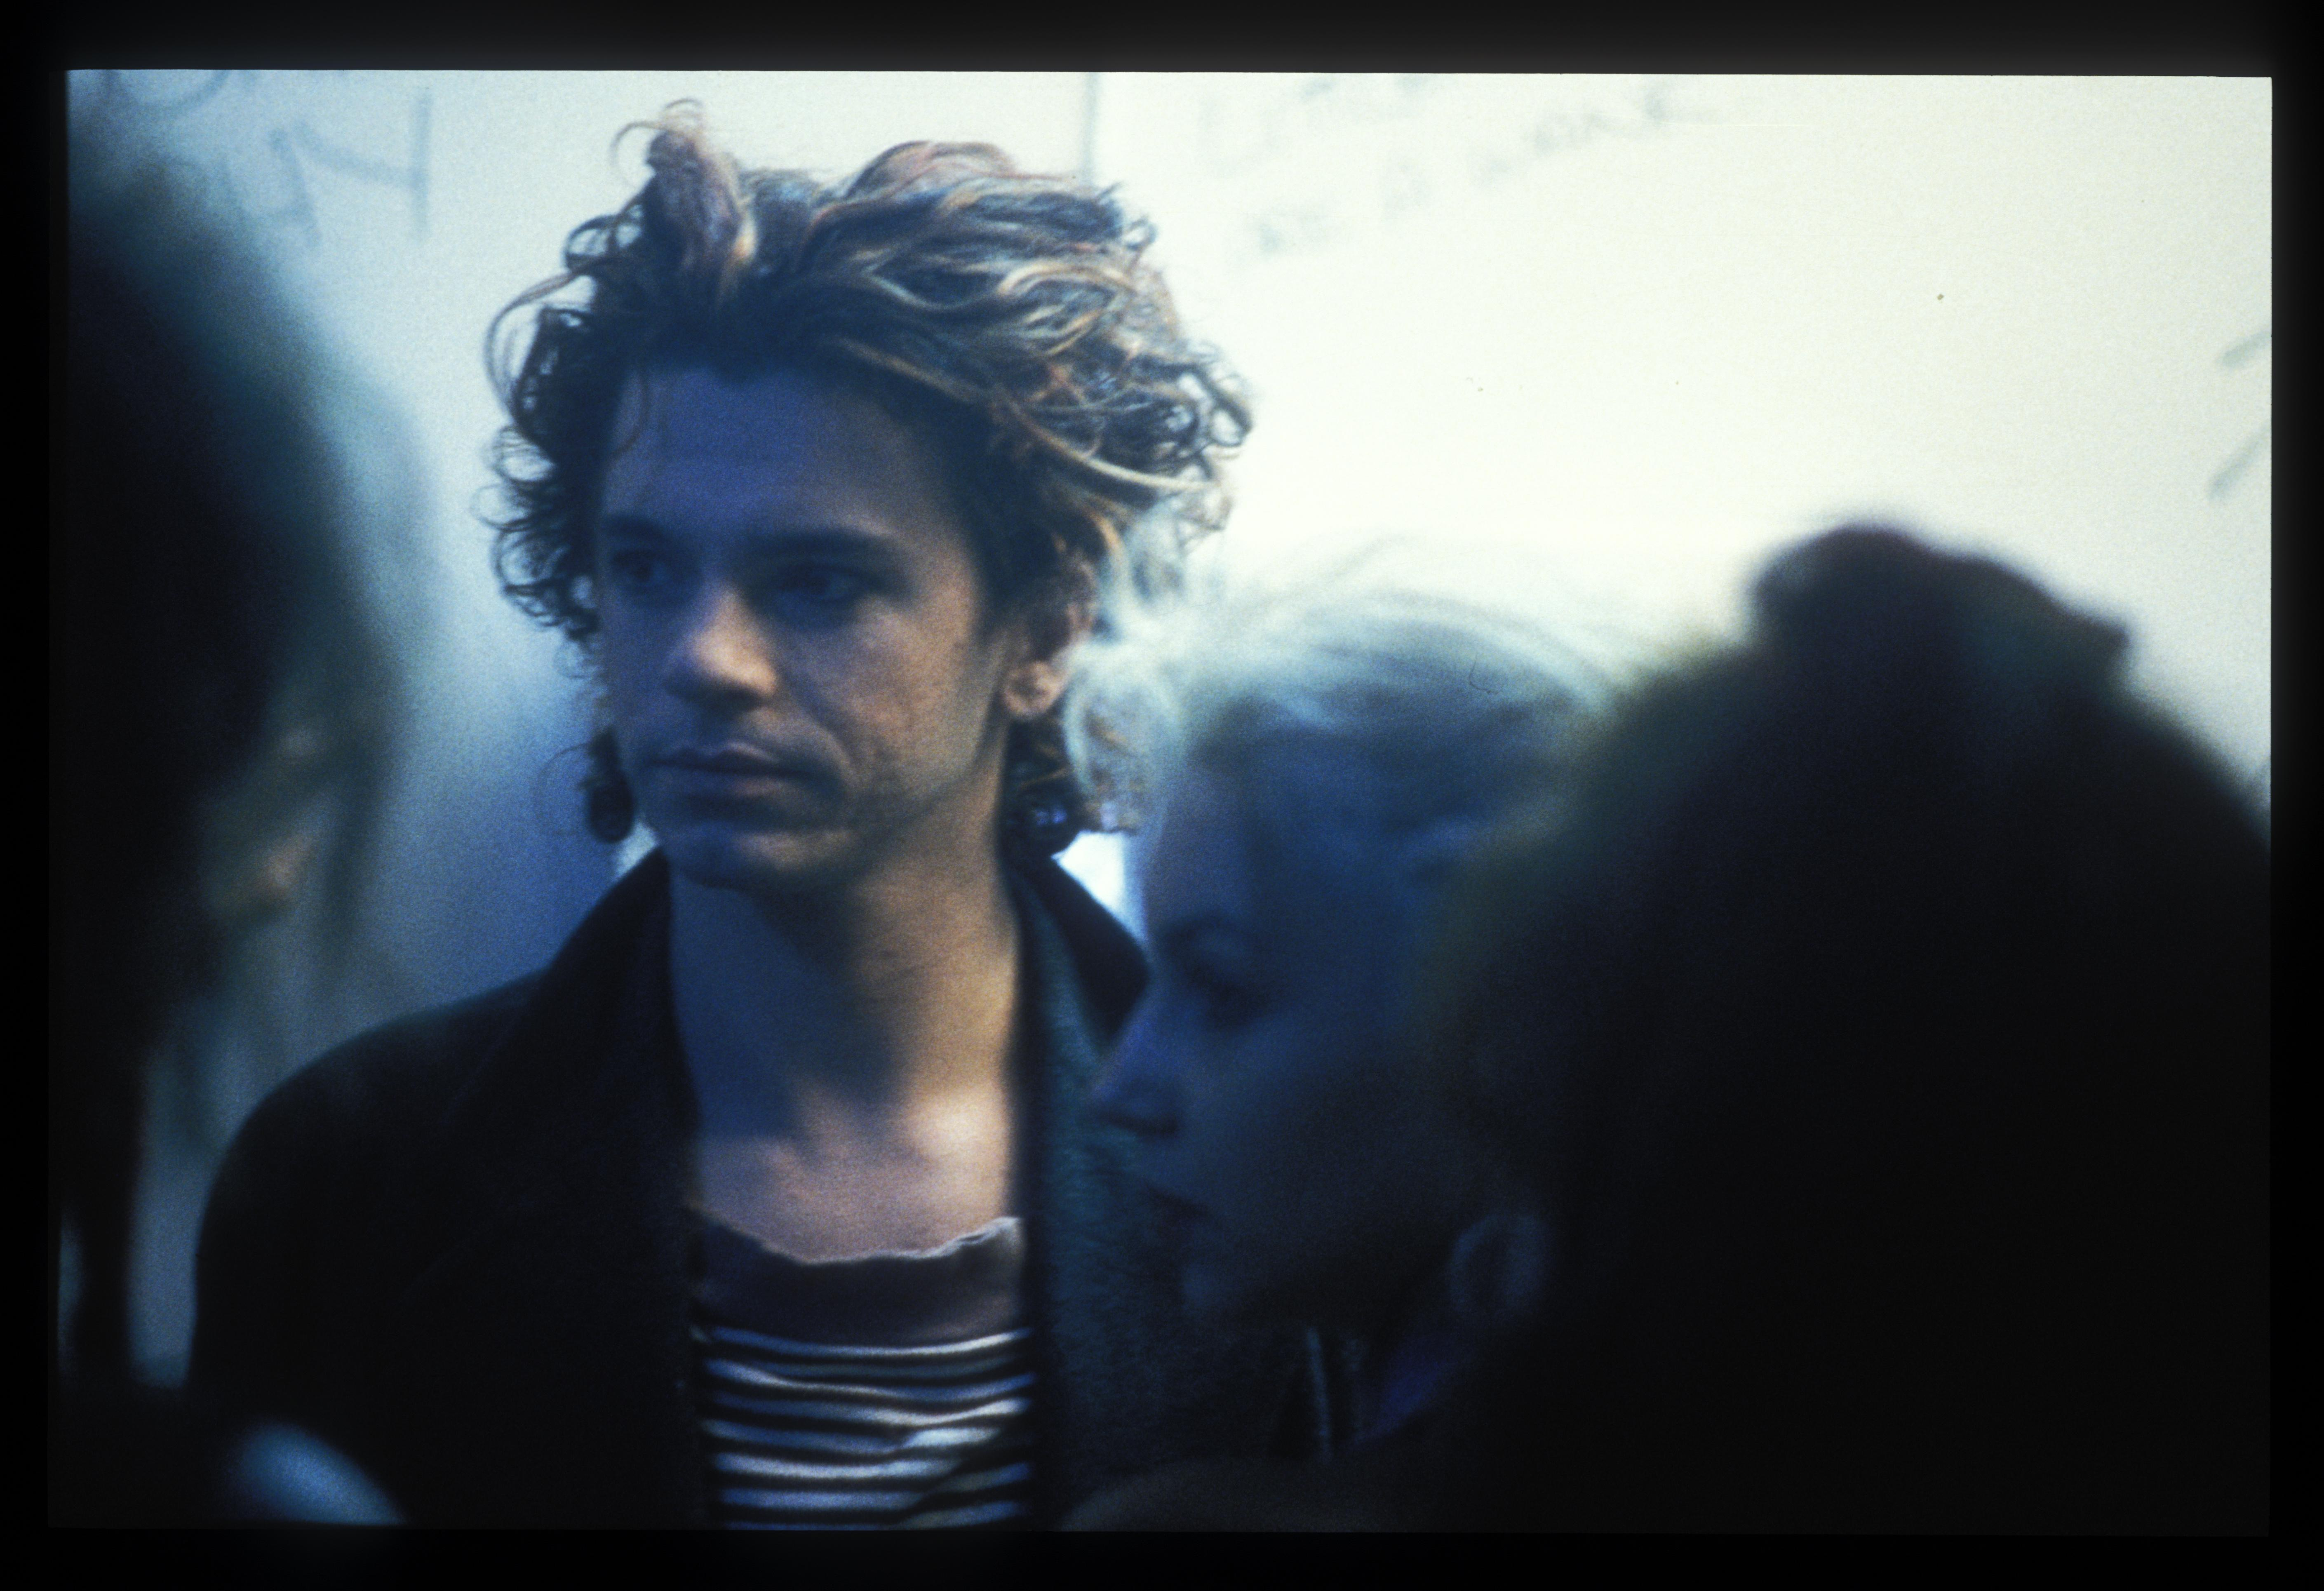 Mystify: Michael Hutchence review – a heavyhearted portrait mainly for the fans